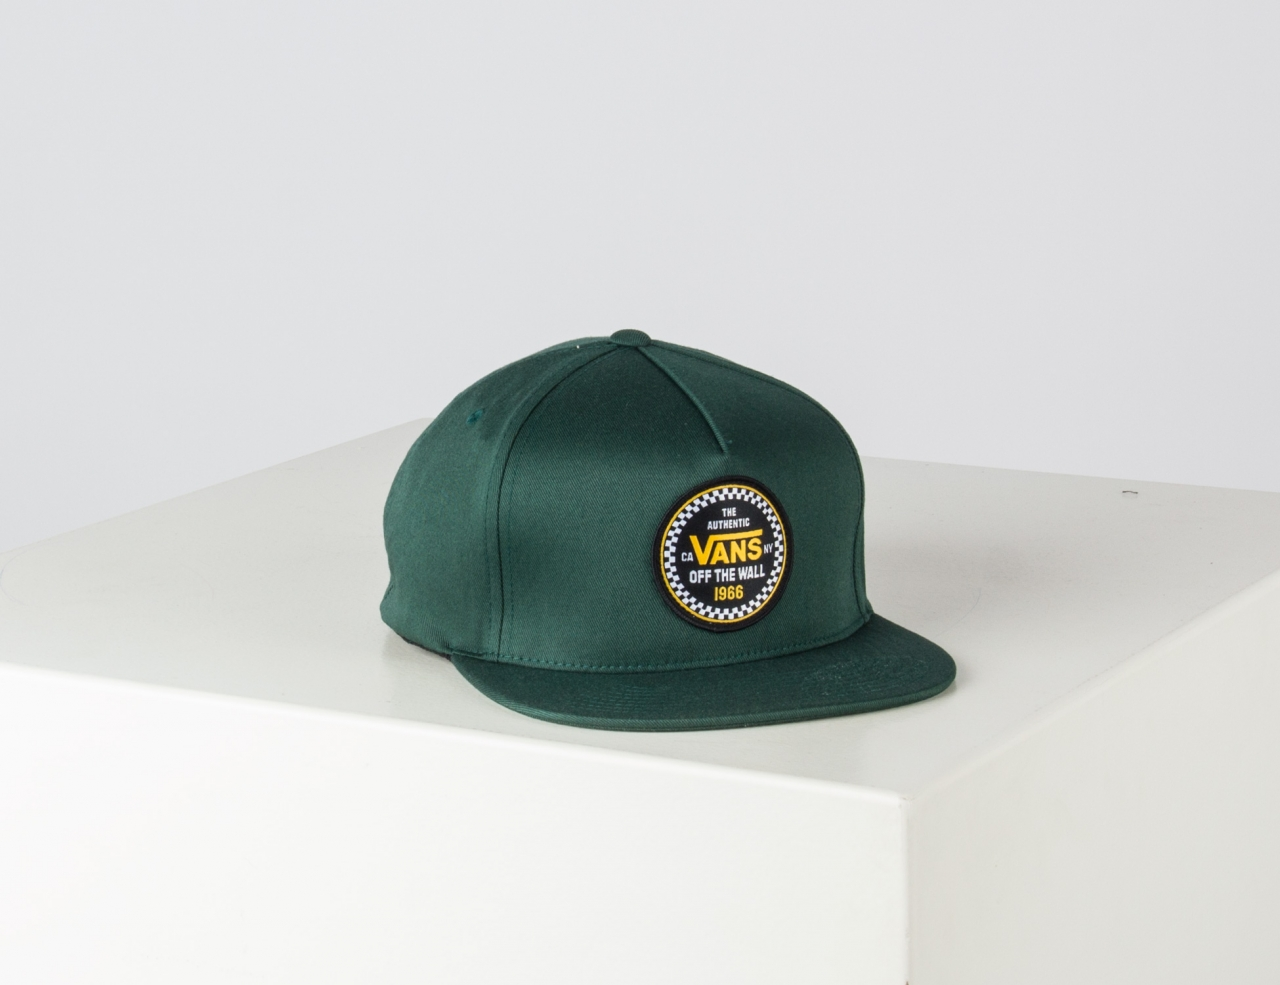 VANS Checker 66 110 Snapback Cap - Pine Needle